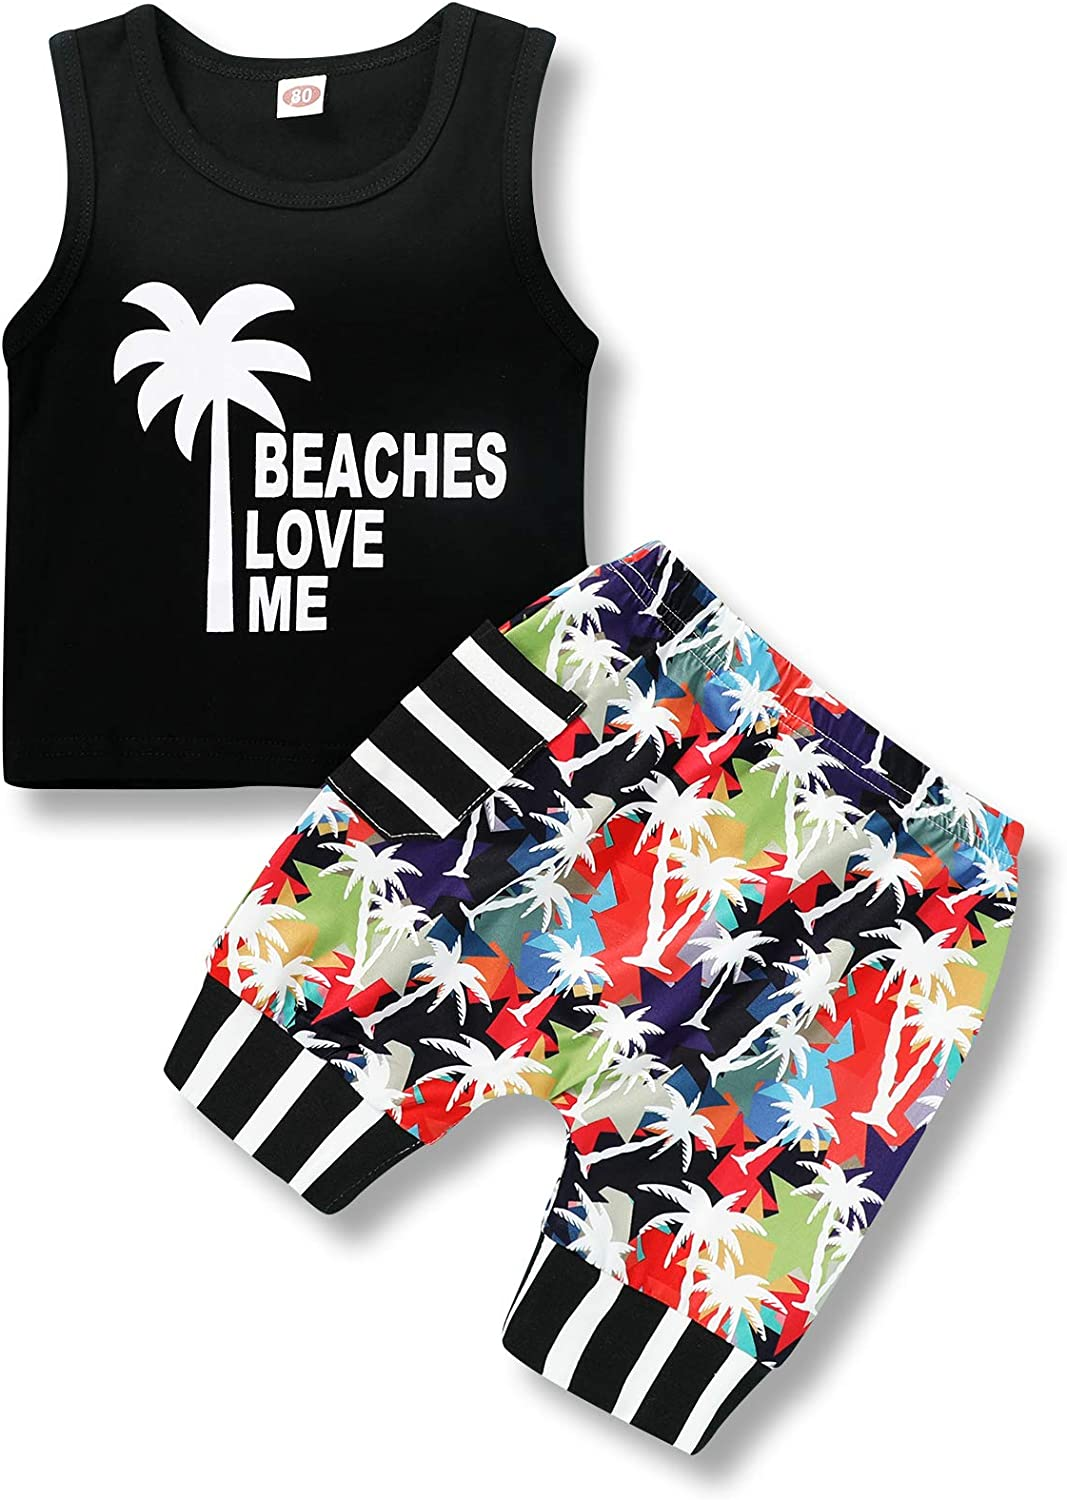 Infant Baby Boys Summer Casual Clothes Set Beaches Love Me Vest Tops +Shorts (Beach Love ME#2, 6-12 Months)